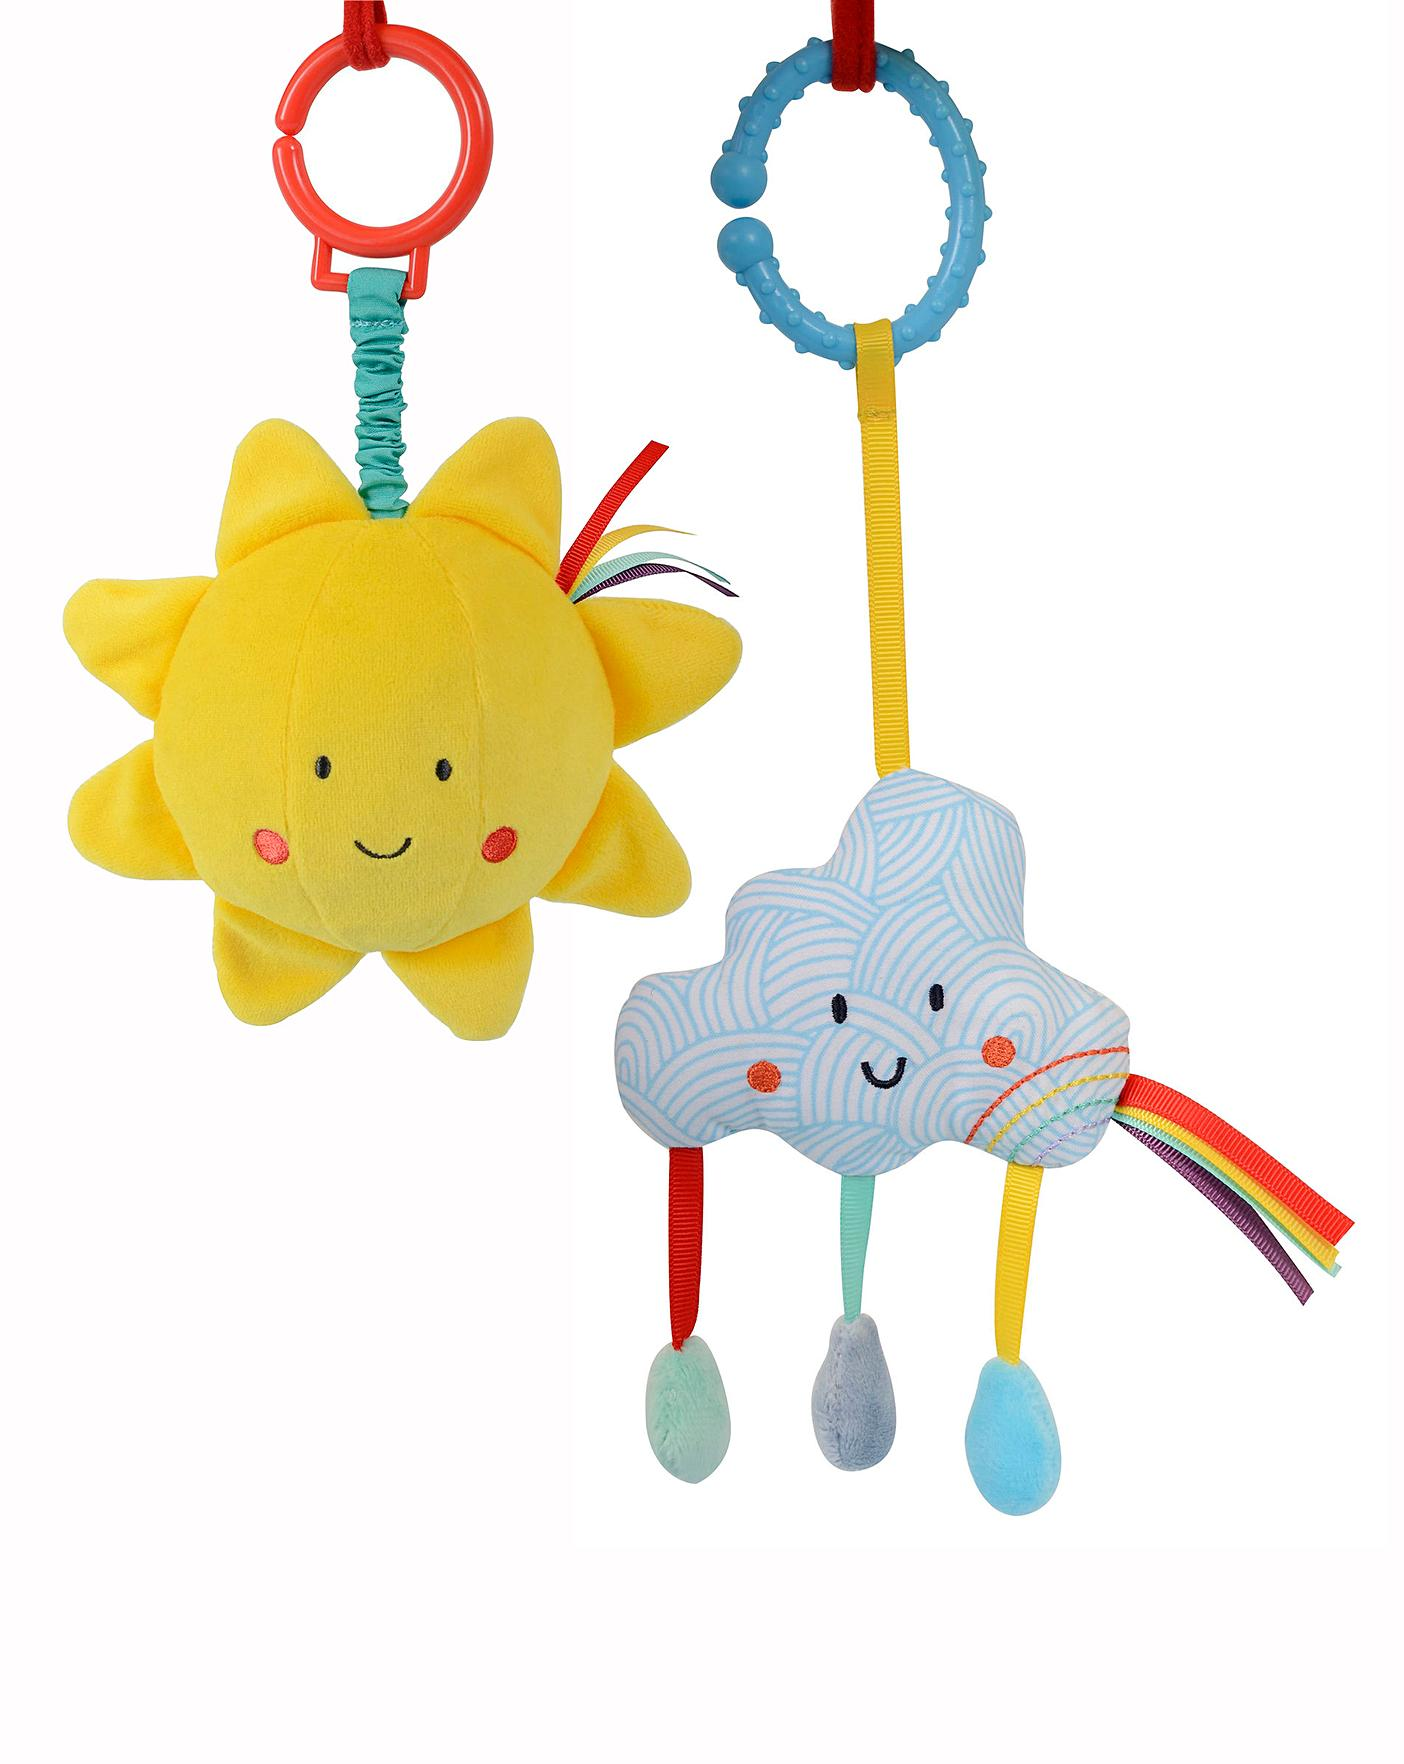 Say Hello Sun and Cloud Stroller Toy 2pk